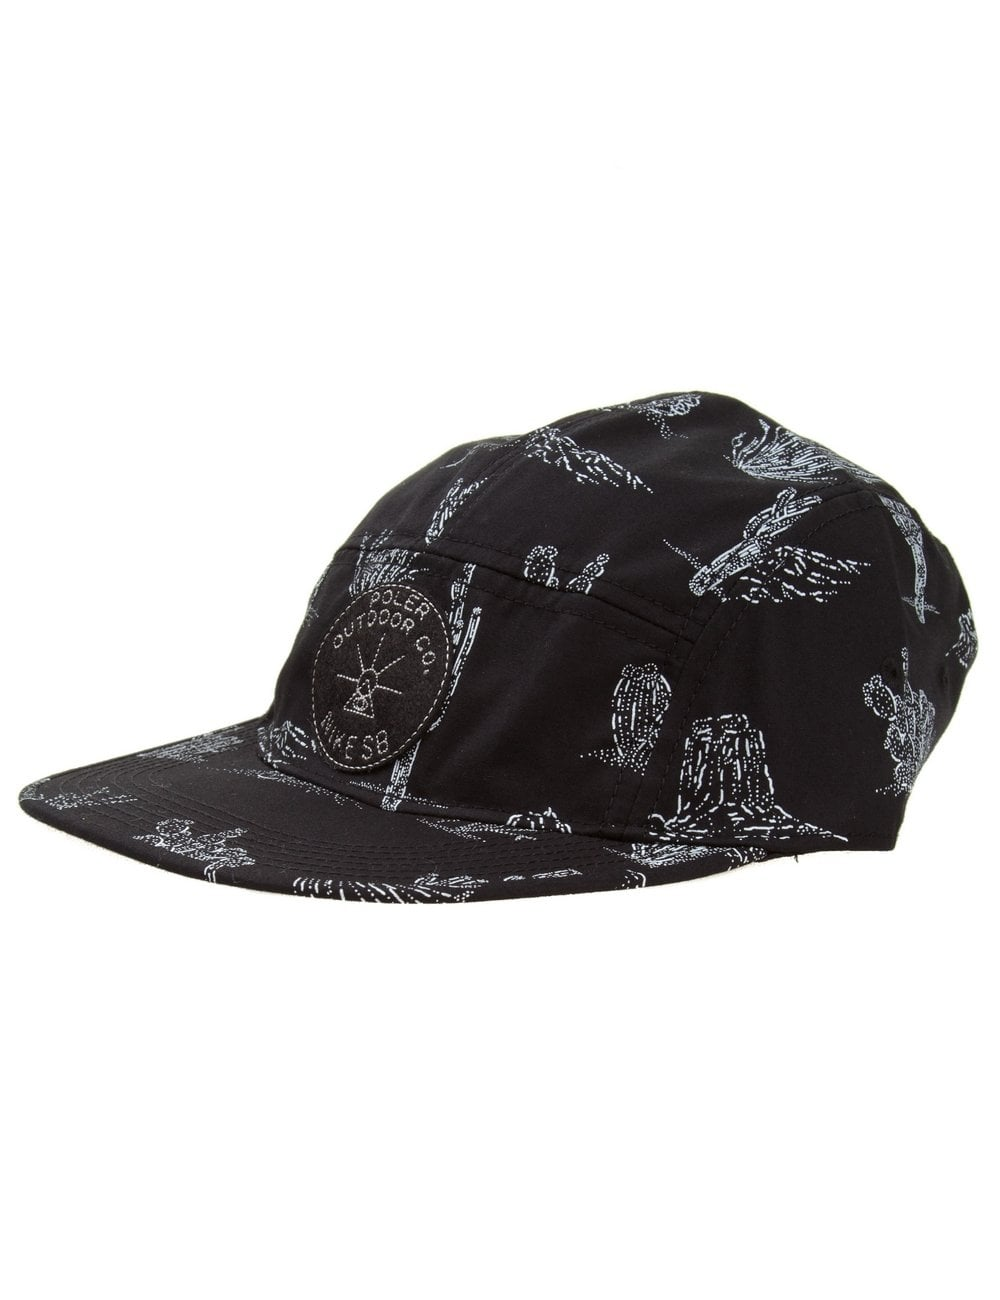 616fa167dacaf Nike SB X Poler 5 Panel Hat - Black - Accessories from Fat Buddha ...